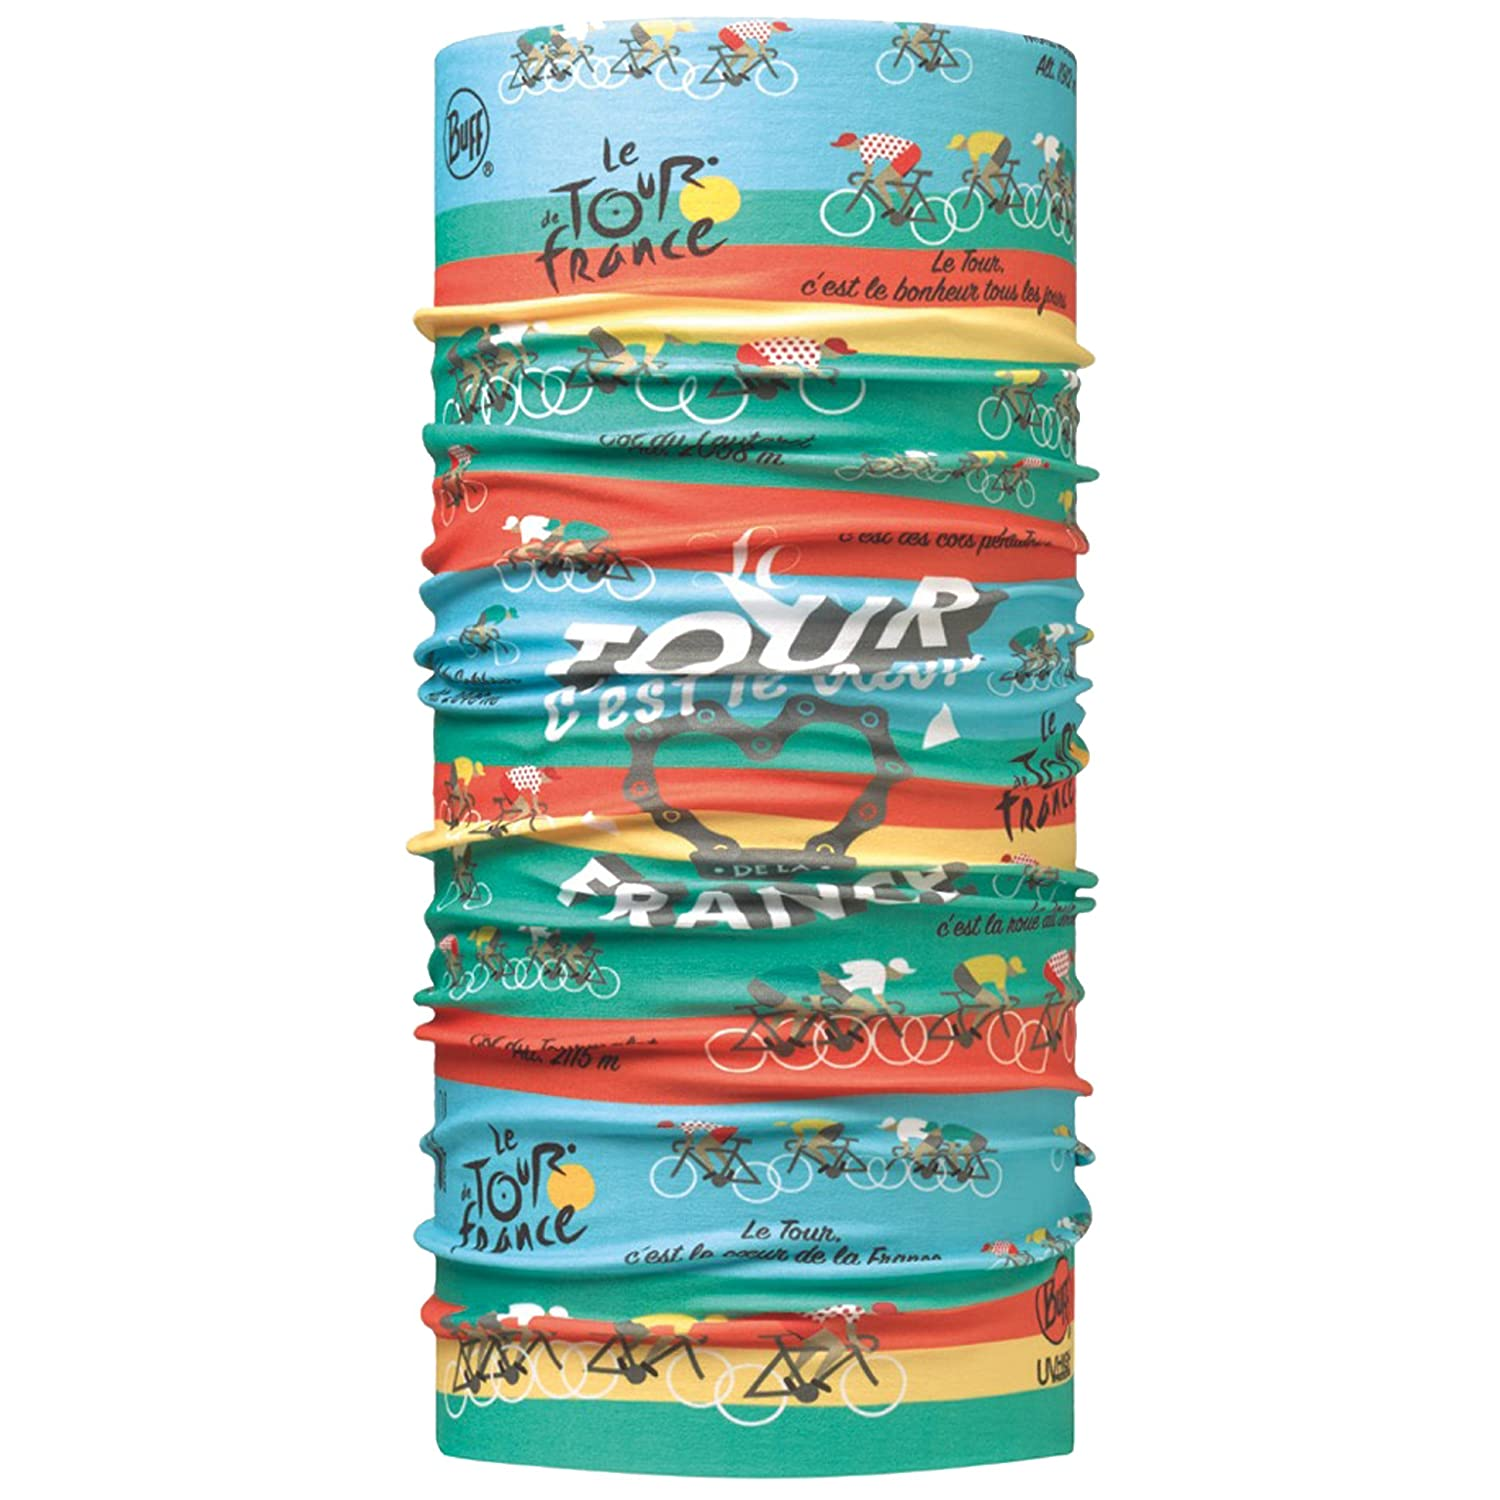 Buff High Uv Protection Tour De France Multifunktionstuch Le 16 Multi One Size Original Buff S.A.